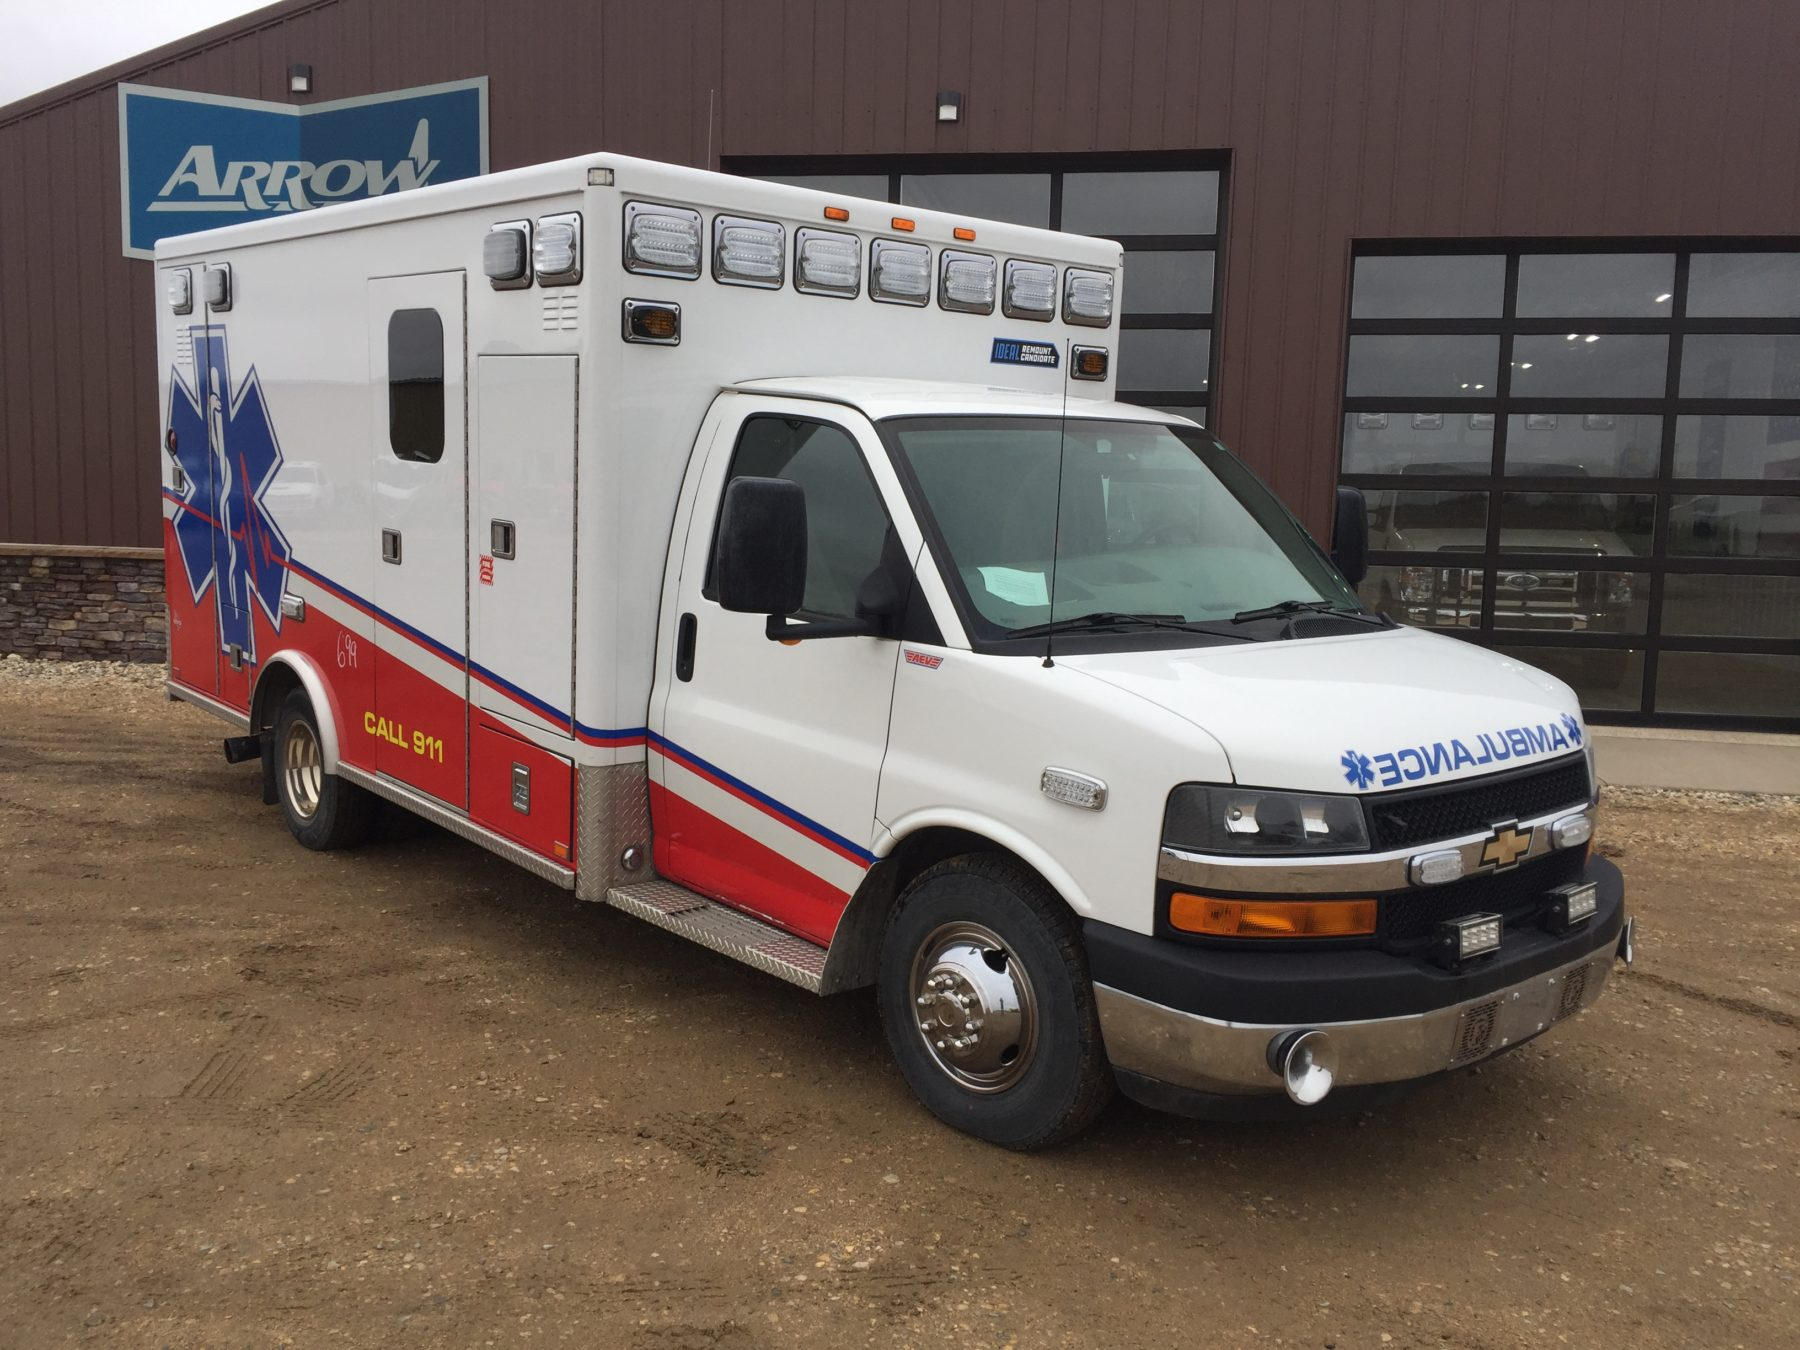 2012 Chevrolet G4500 Type 3 Ambulance For Sale – Picture 3